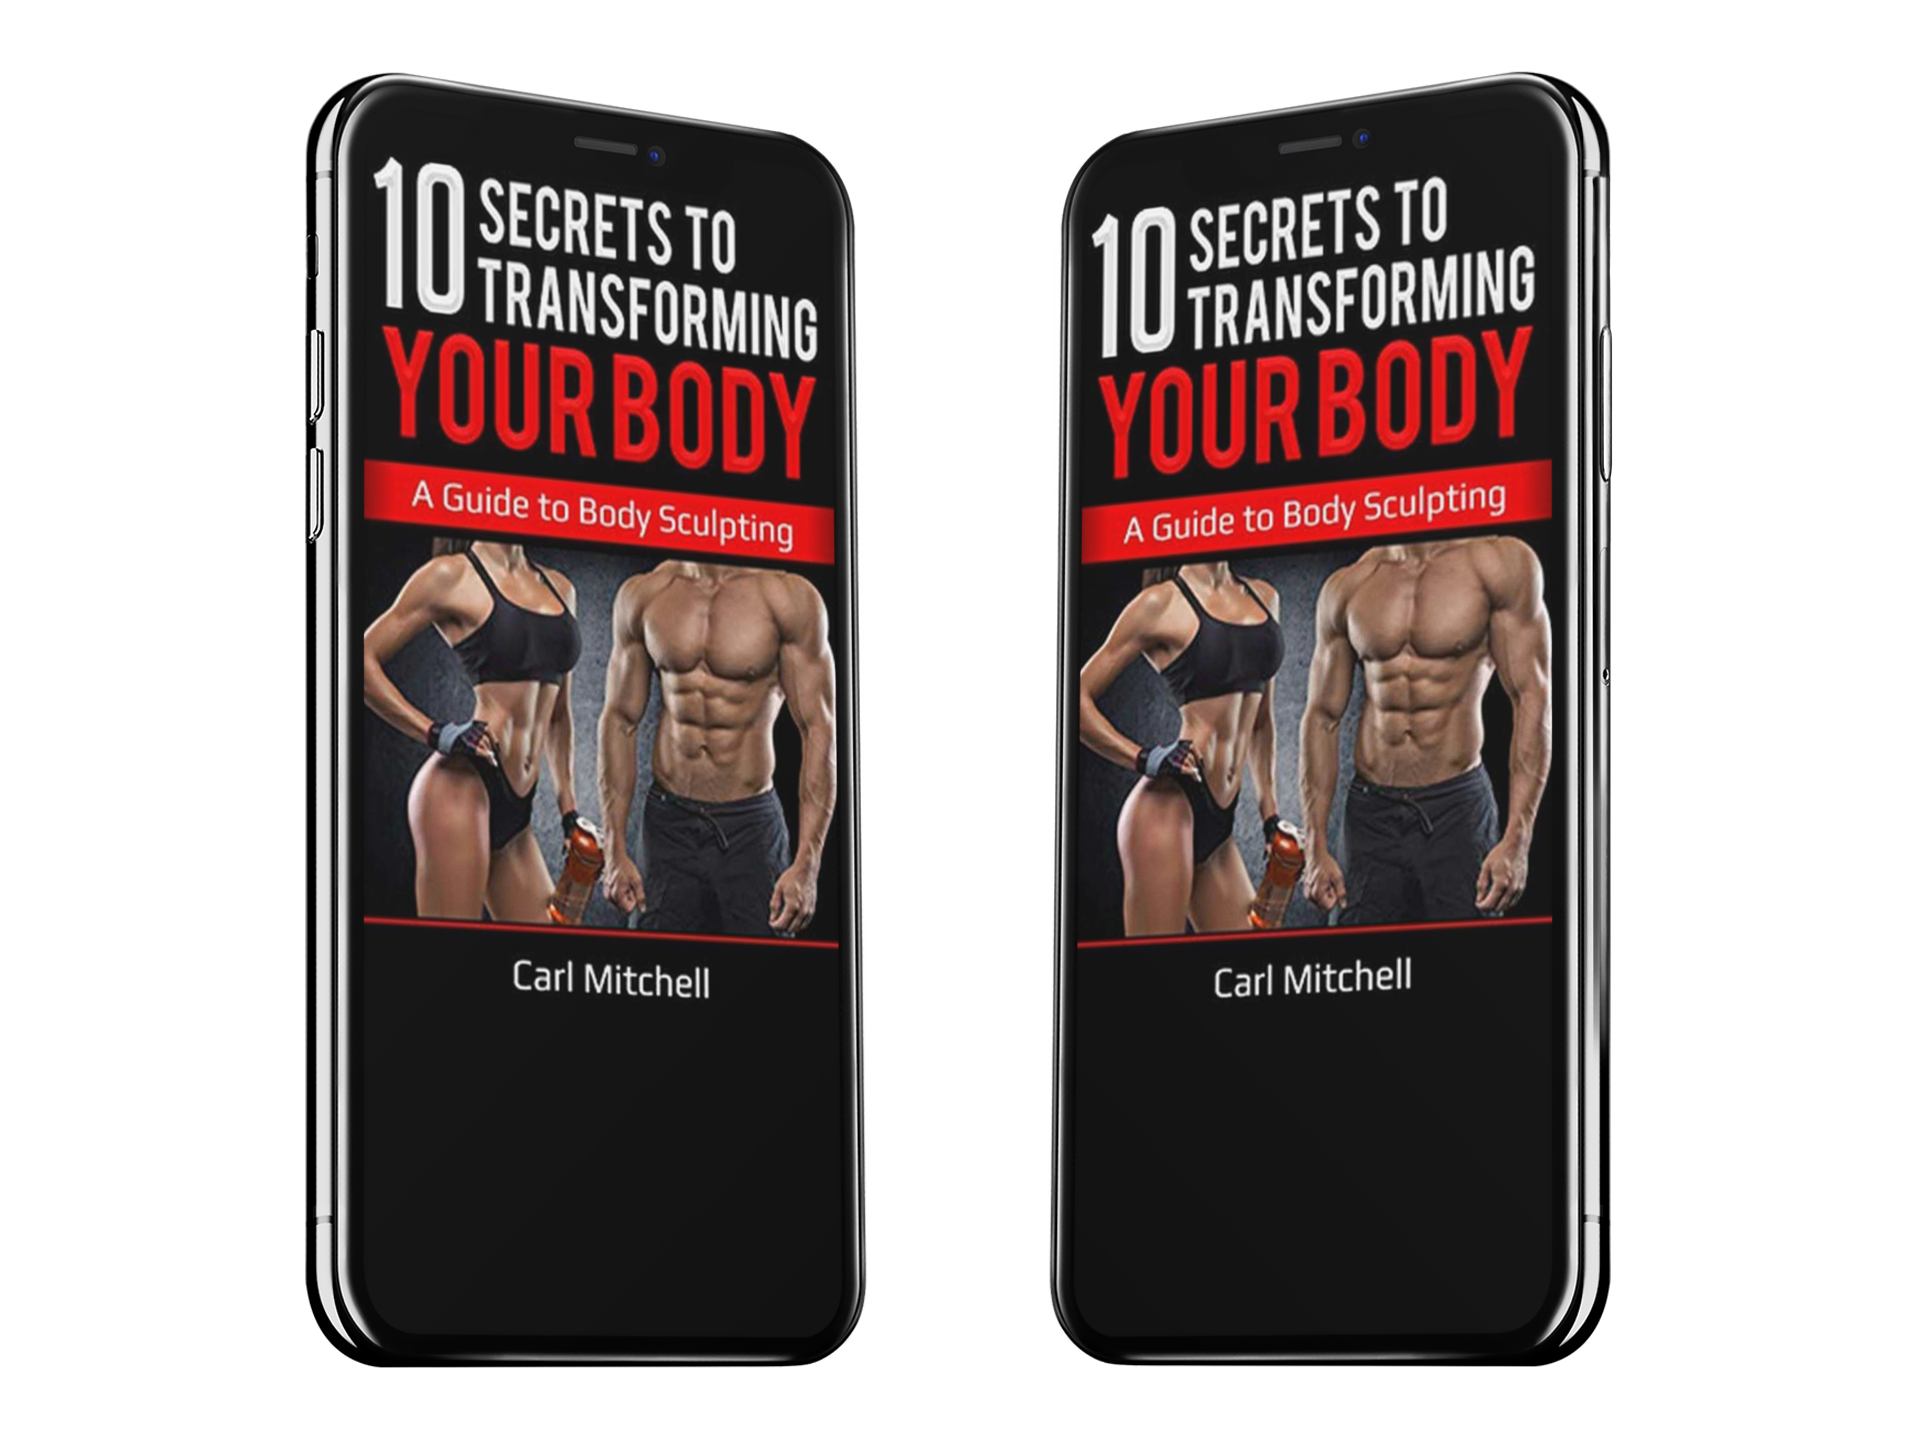 10 Secrets to Transforming Your Body: A Guide to Body Sculpting